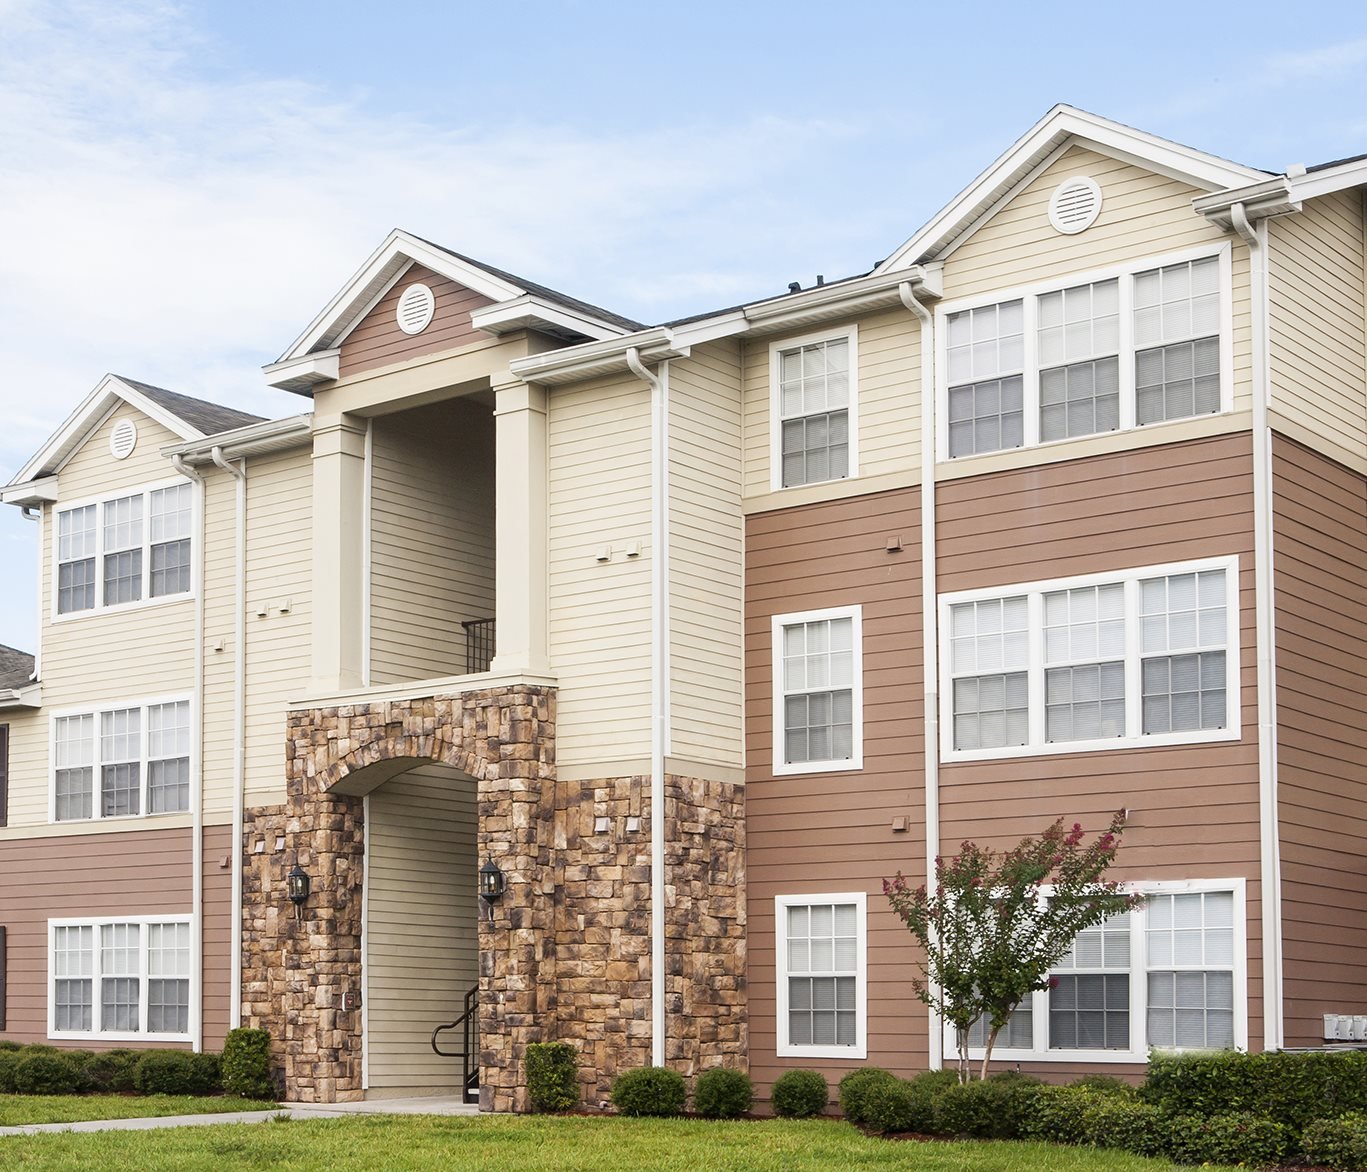 Lee Vista Apartments For Rent In Orlando Fl Make This Community Your New Home